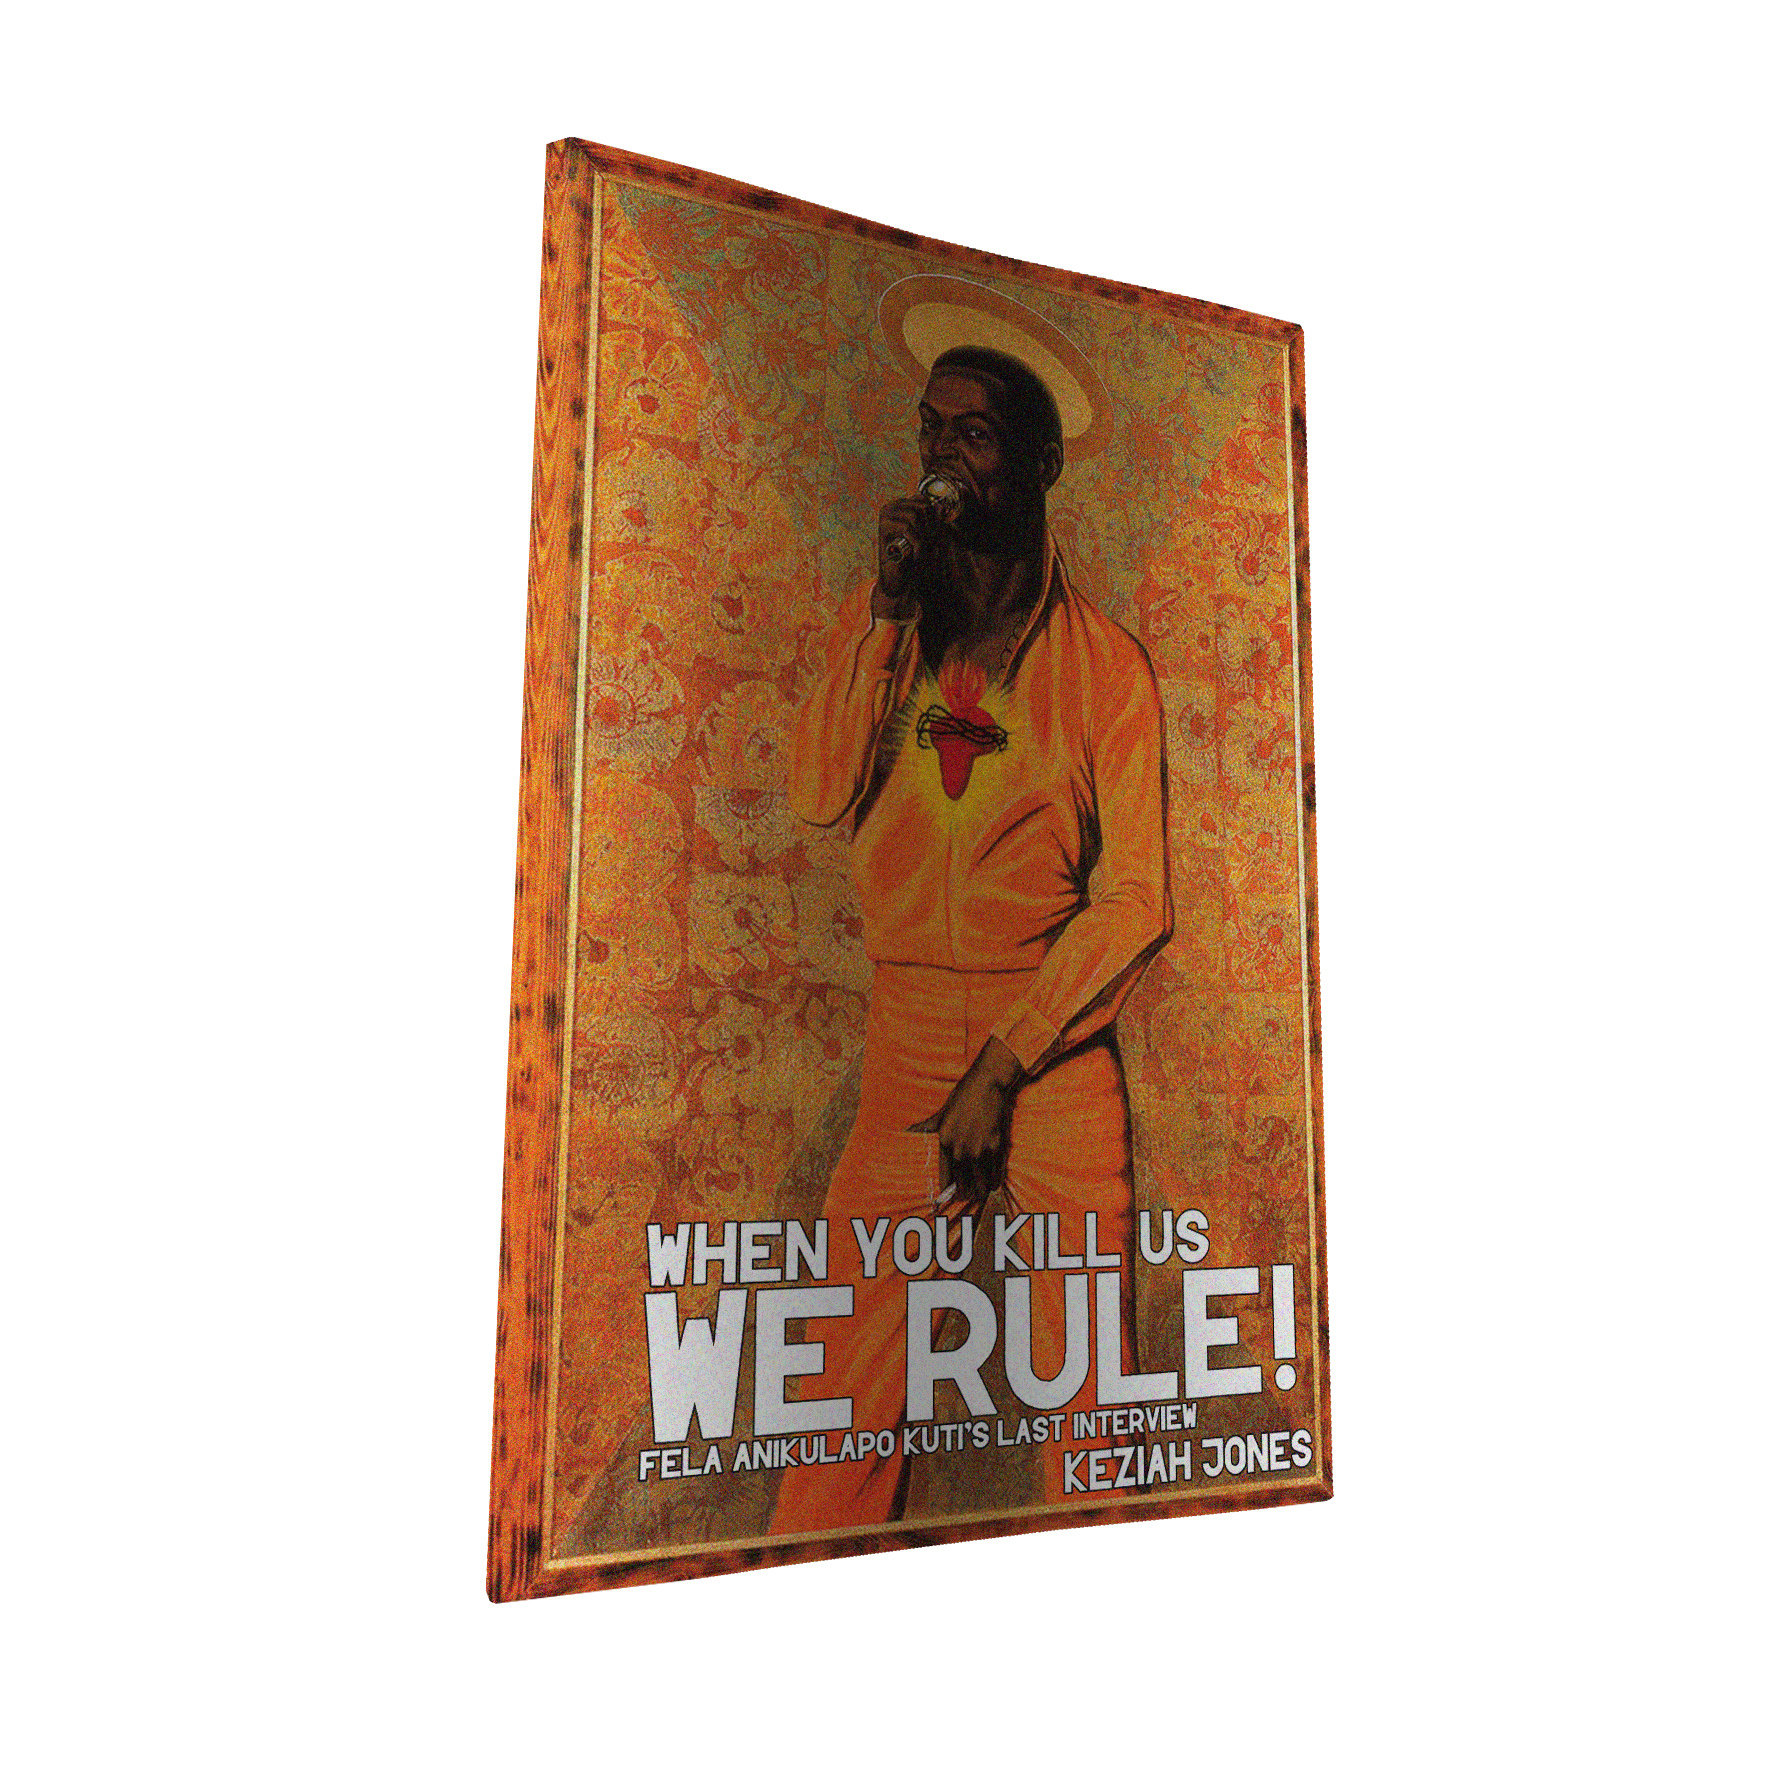 Chimurenganyana Series 1: When You Kill Us, We Rule! by Keziah Jones (June 2012) CN09